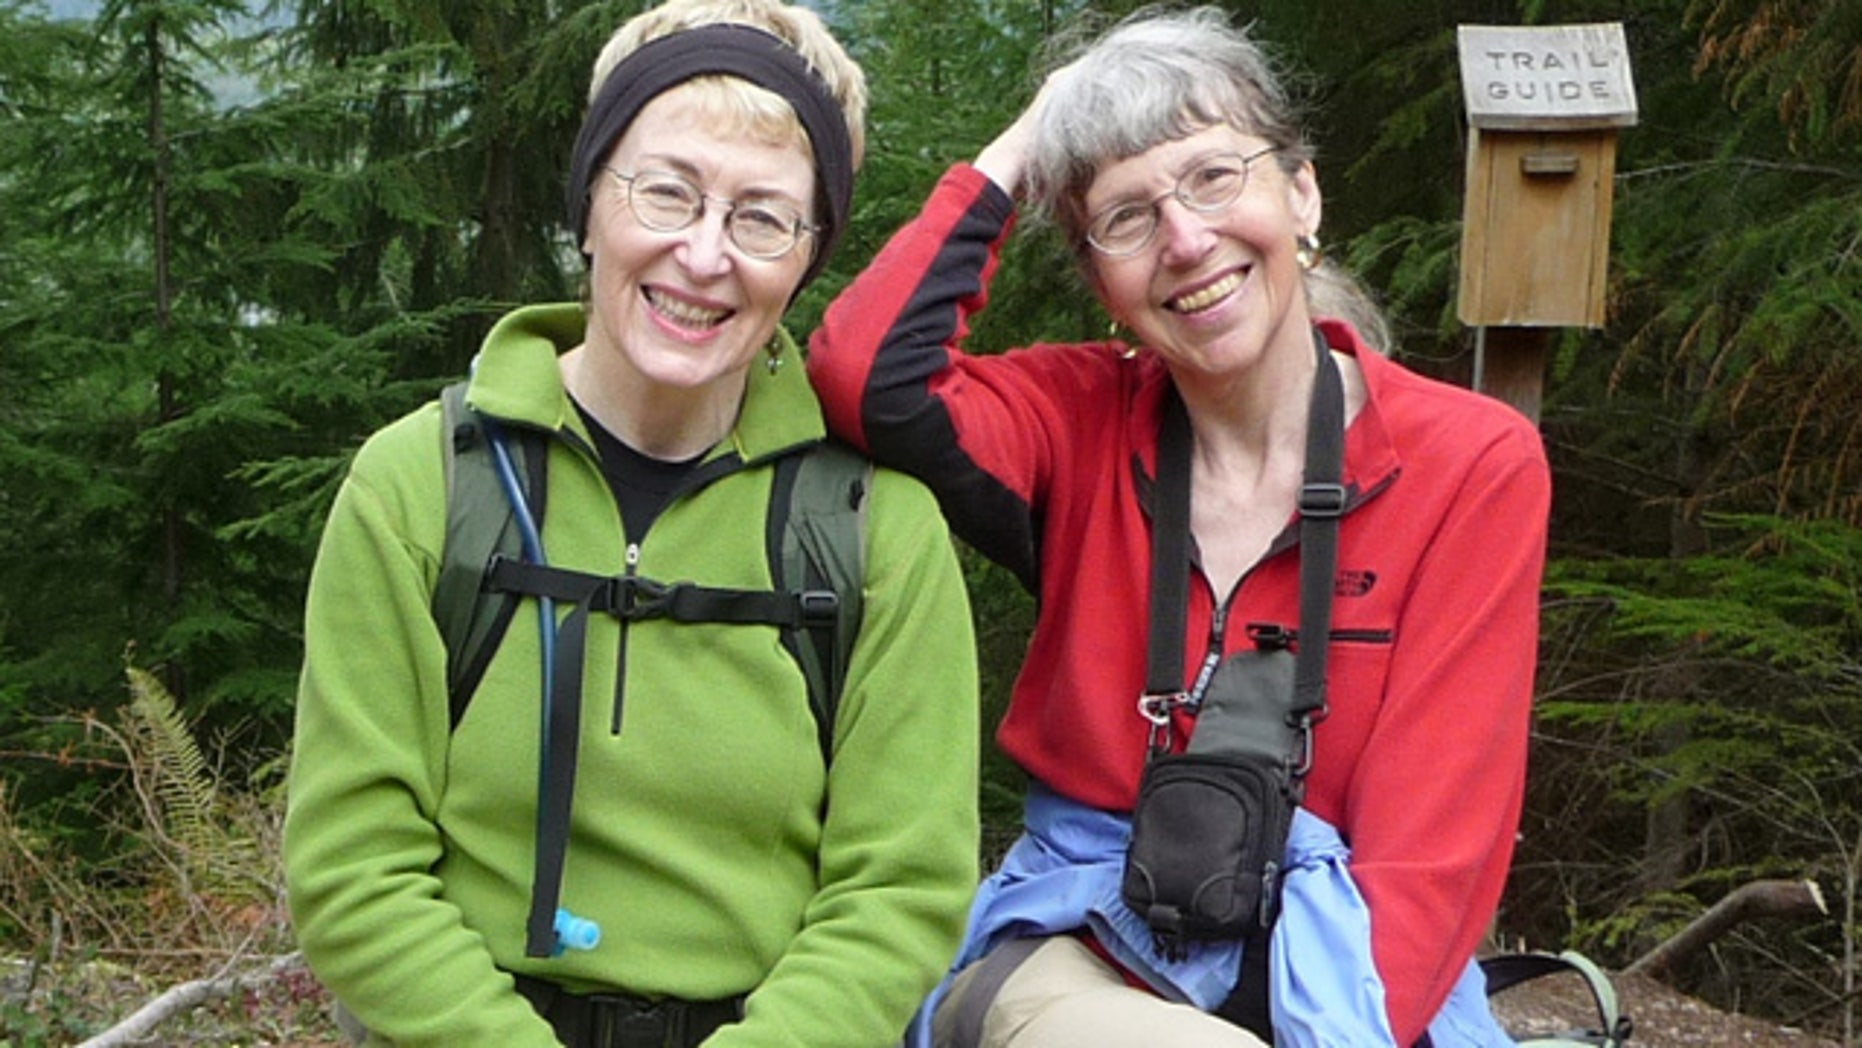 This undated image provided by Lola Kemp shows missing hiker Karen Sykes, right, with her friend Lola Kemp. (AP Photo/Lola Kemp)